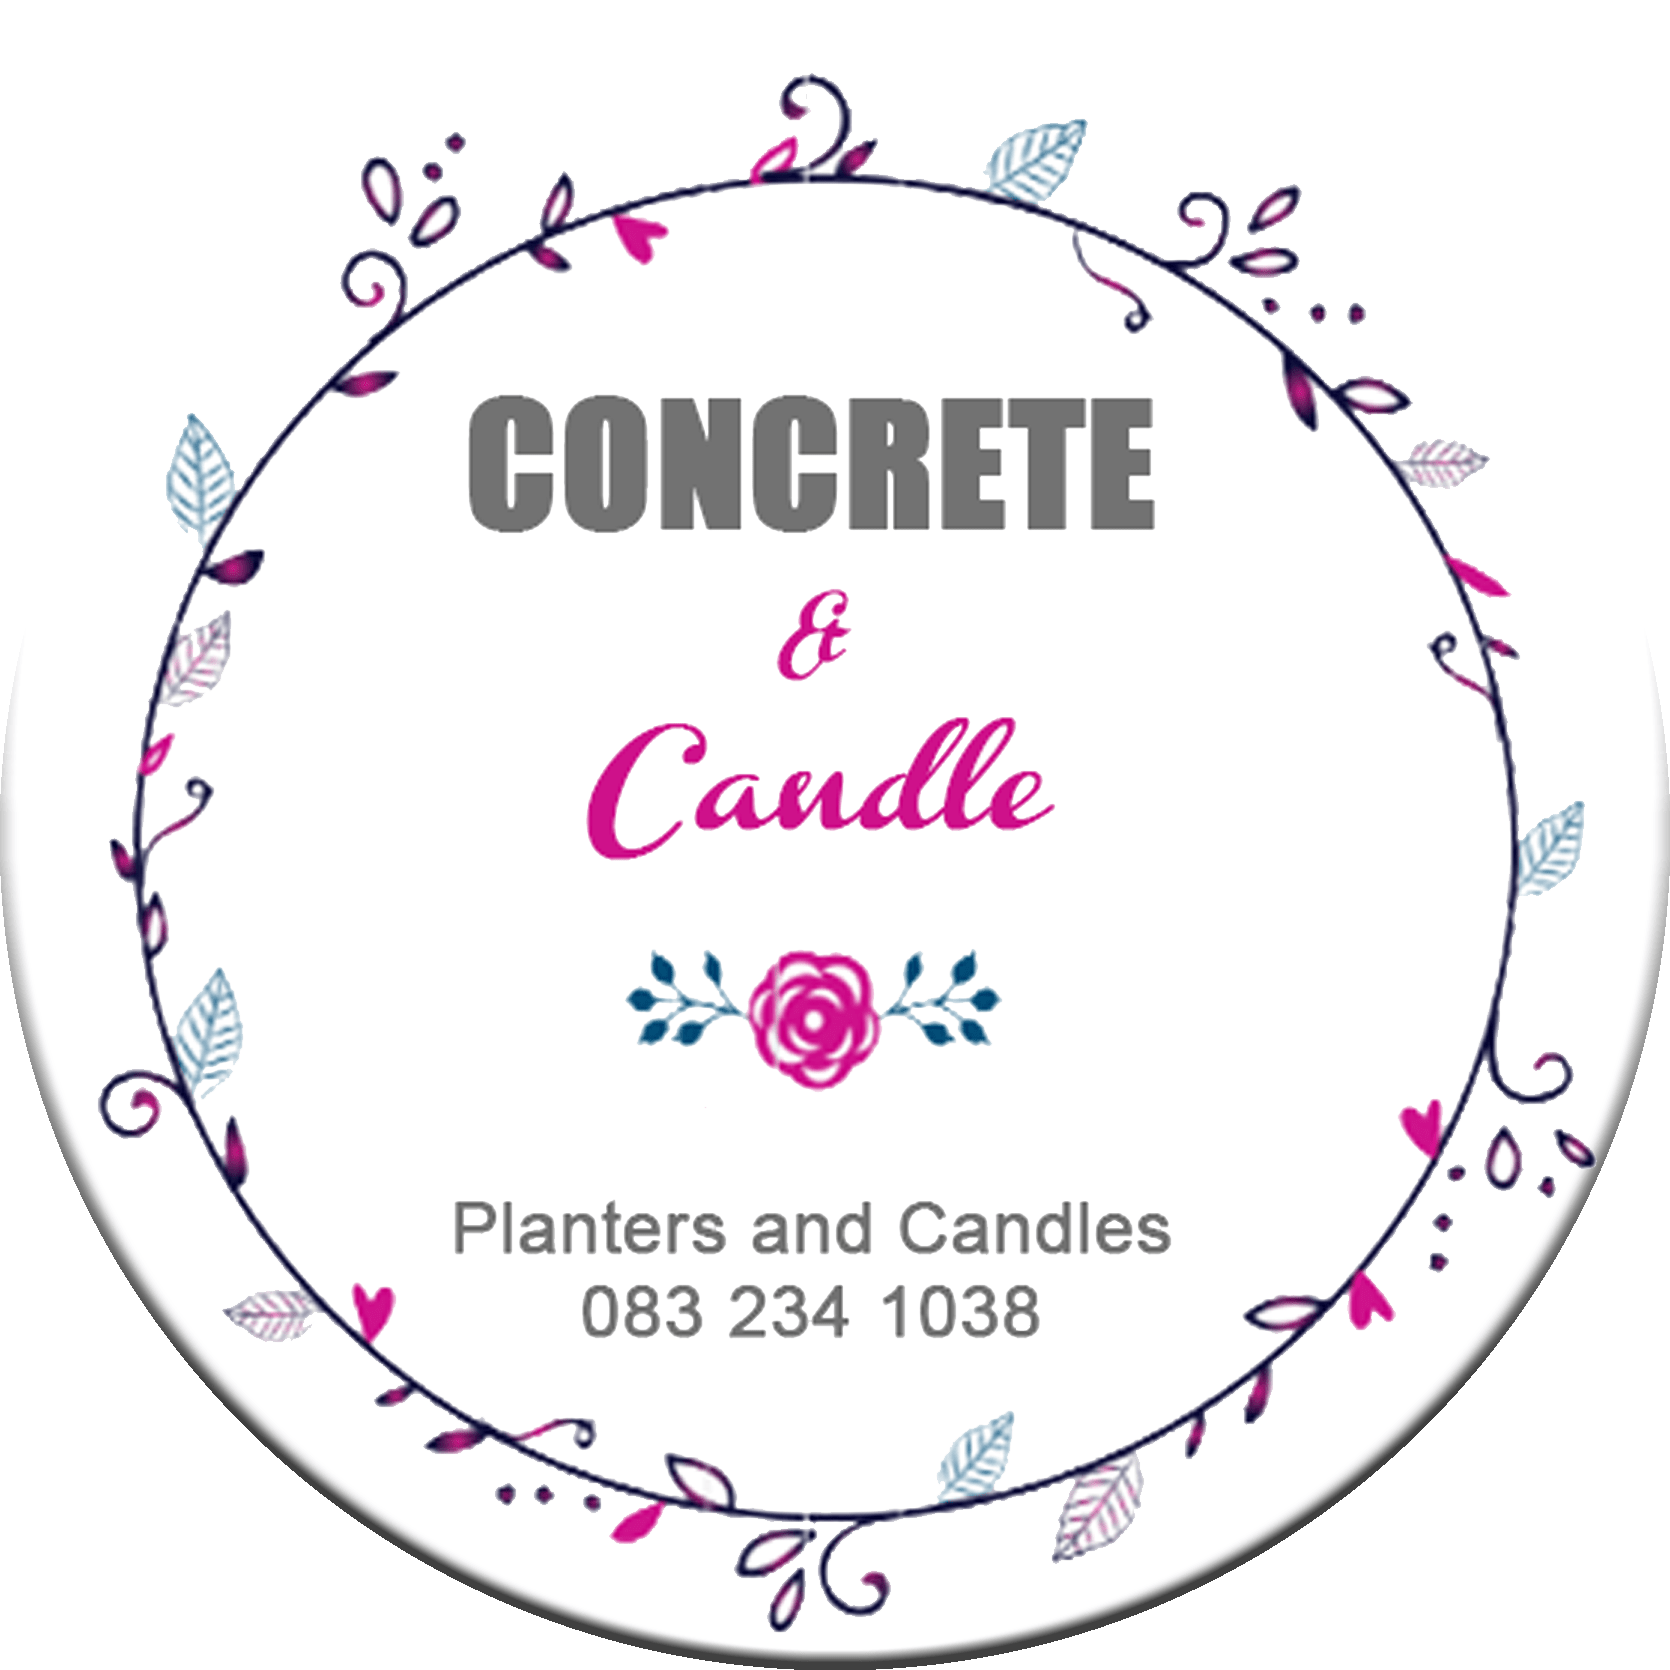 Concrete and Candle